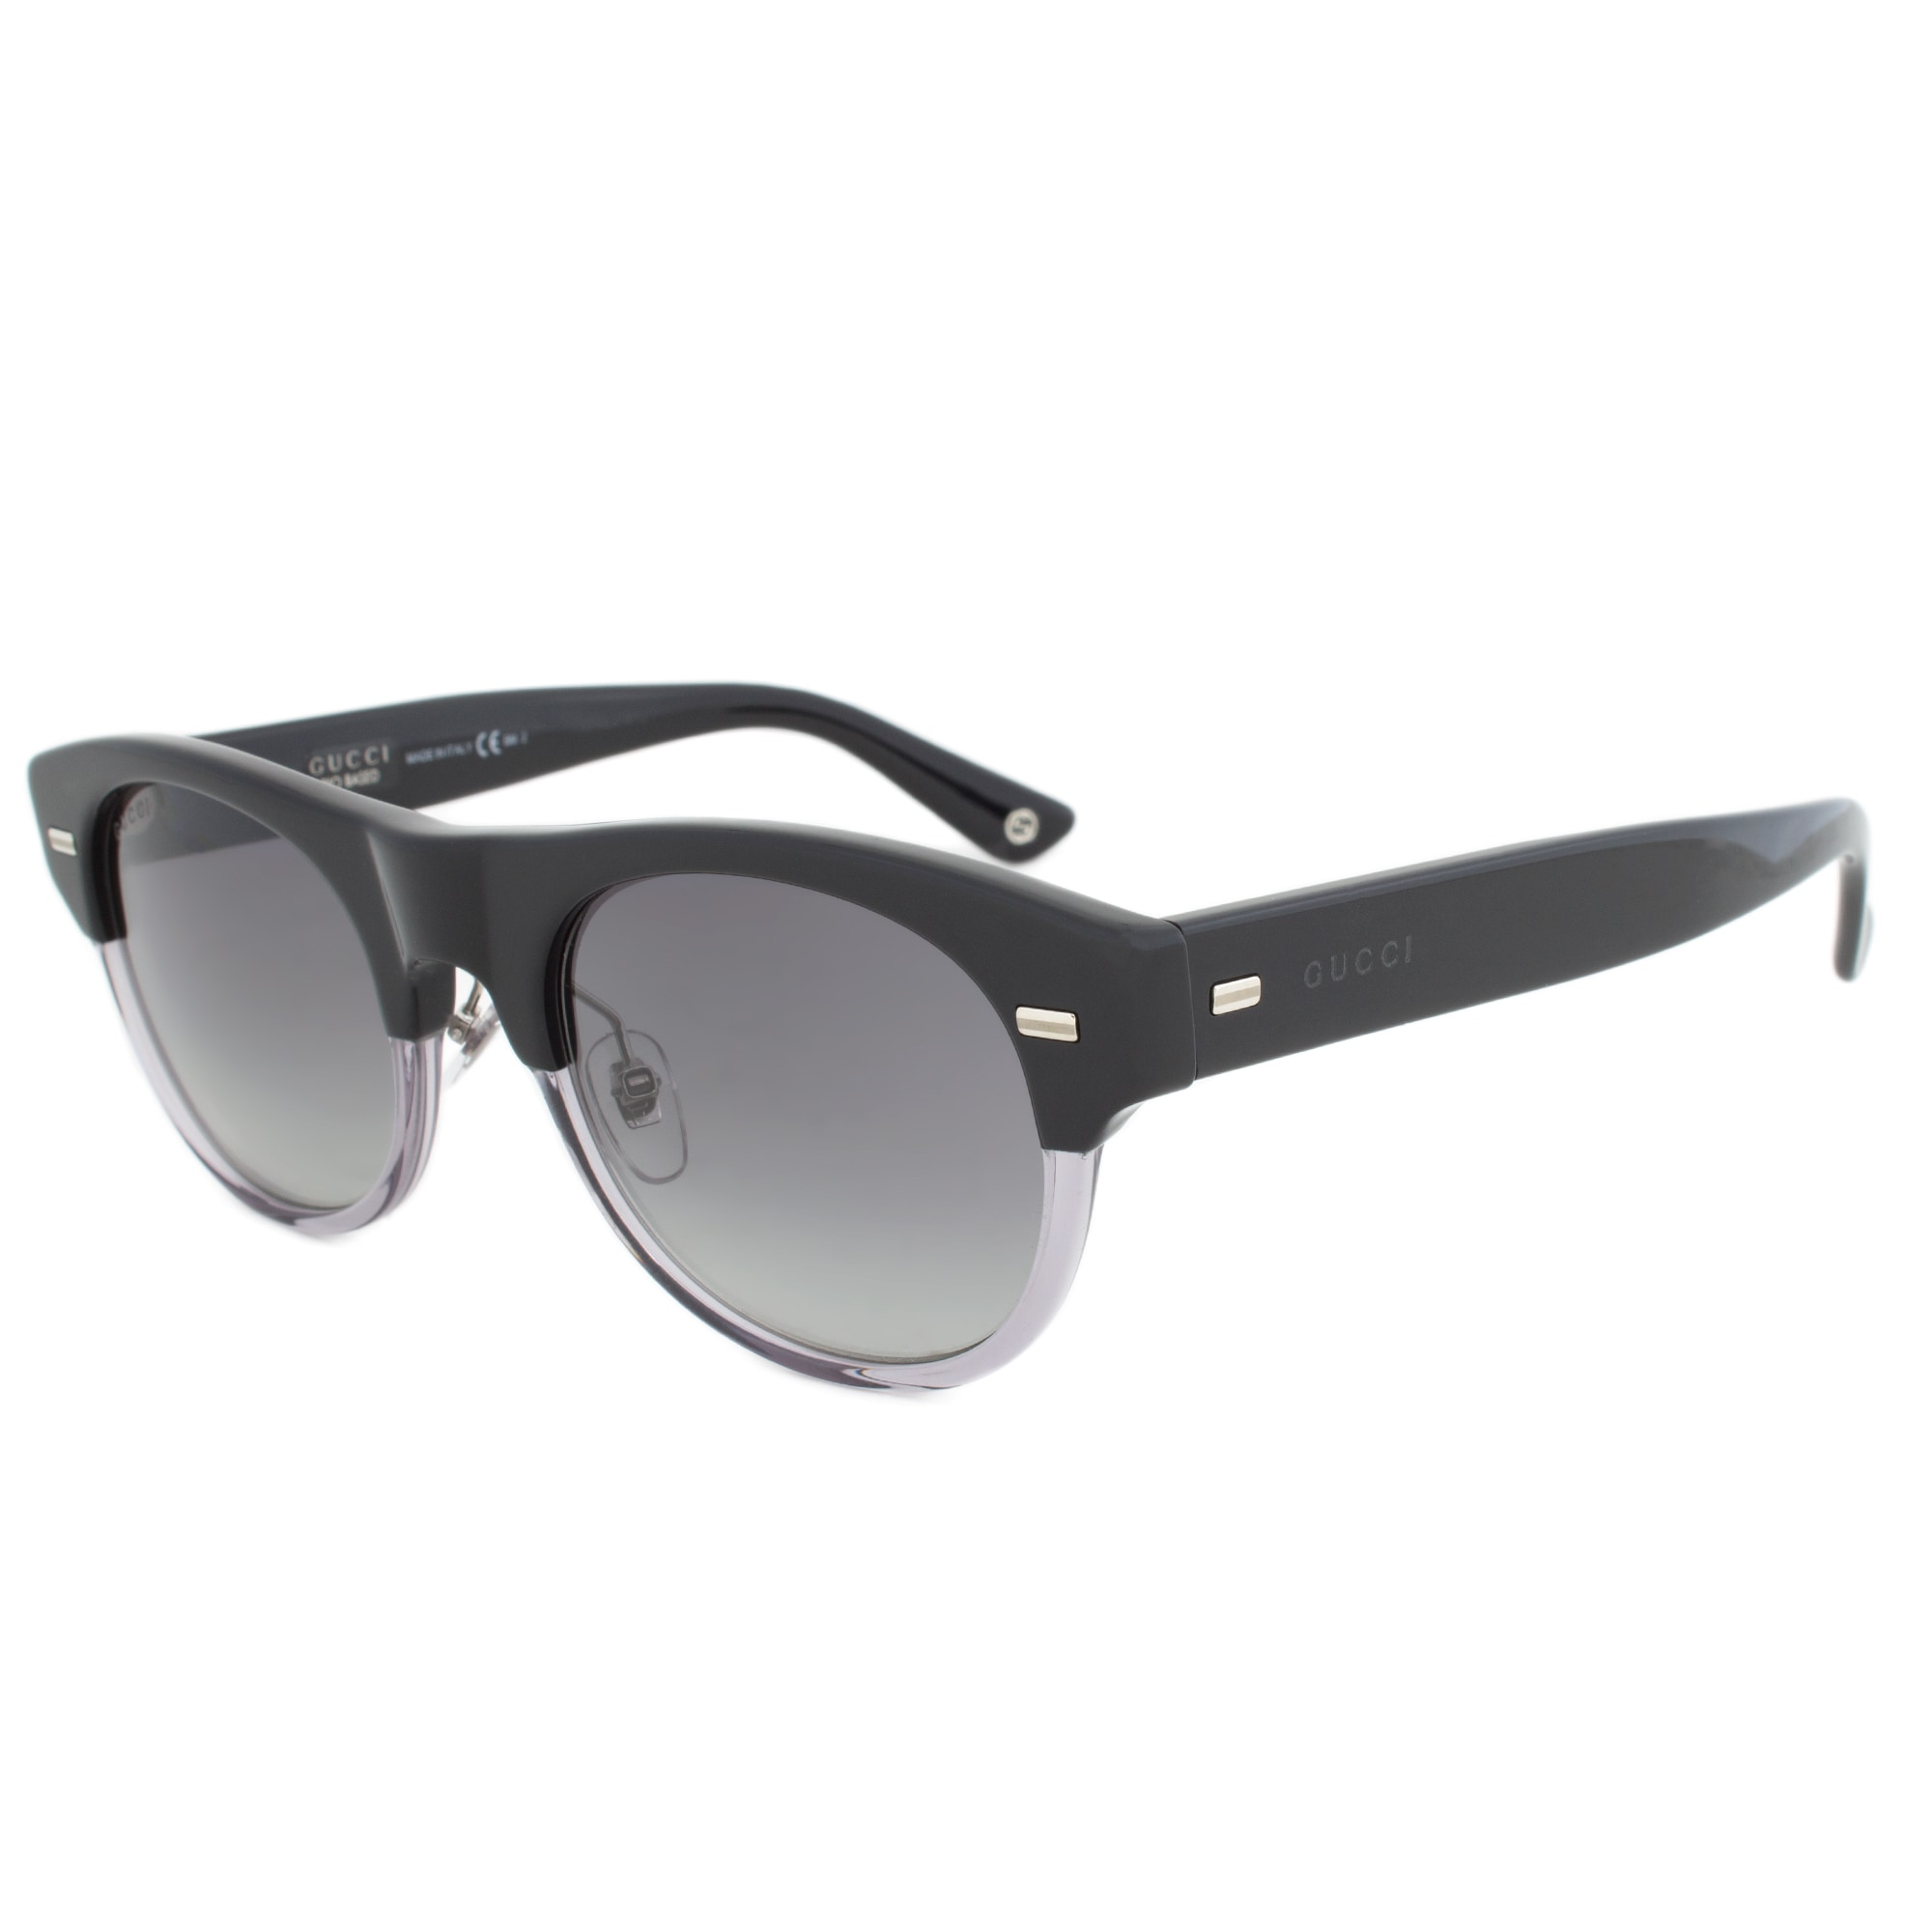 147599a65d7fc Shop Gucci GG 1088 S X9H VK Sunglasses - Free Shipping Today -  Overstock.com - 12059292